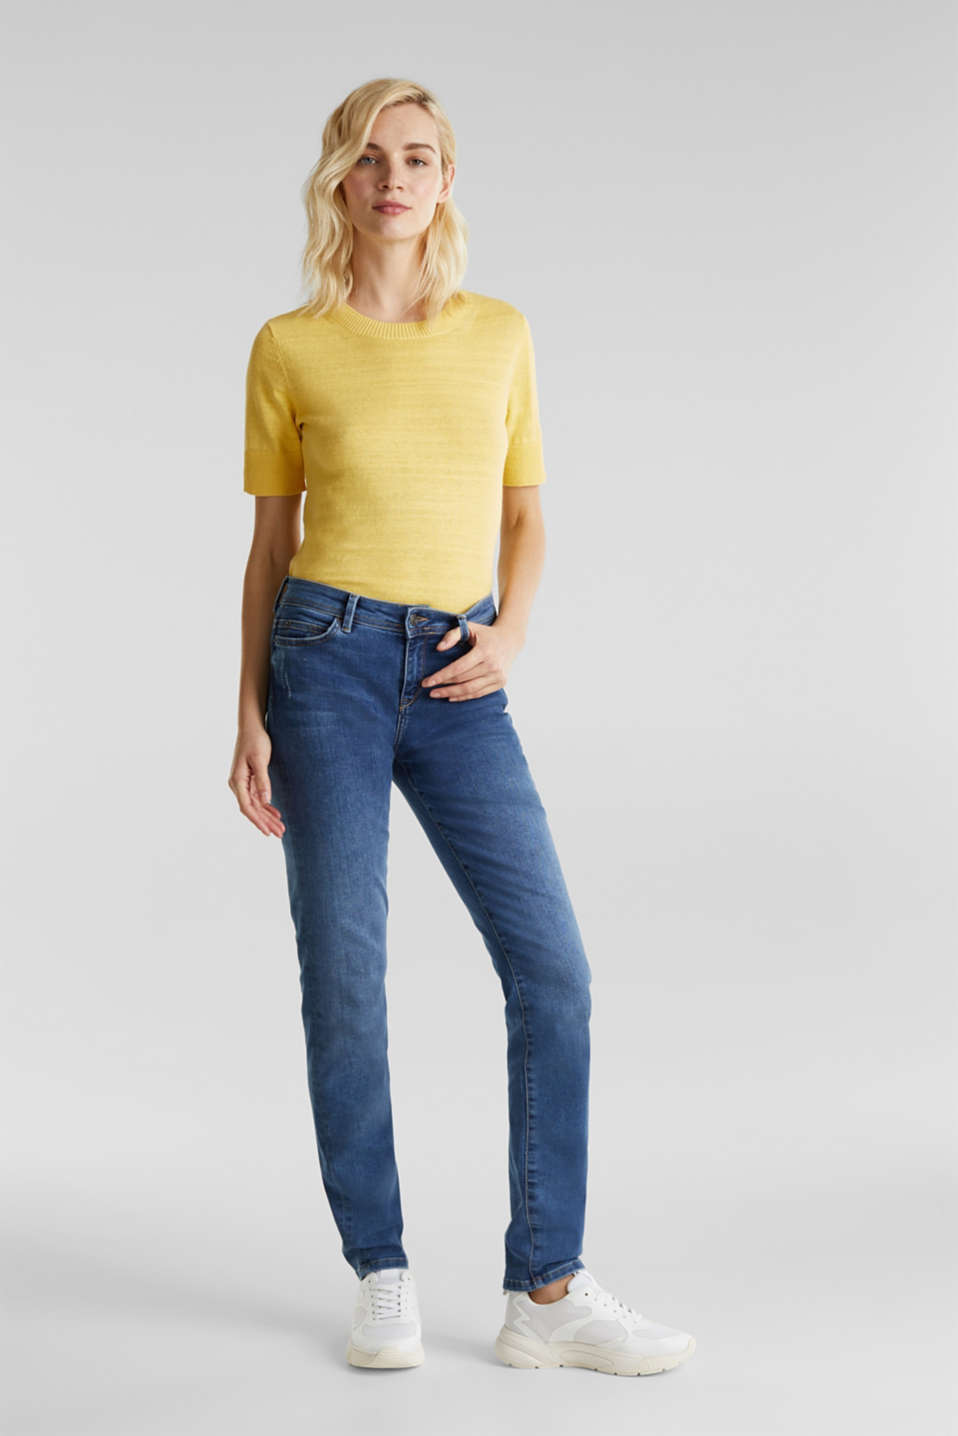 Esprit - REPREVE stretch jeans with recycled polyester